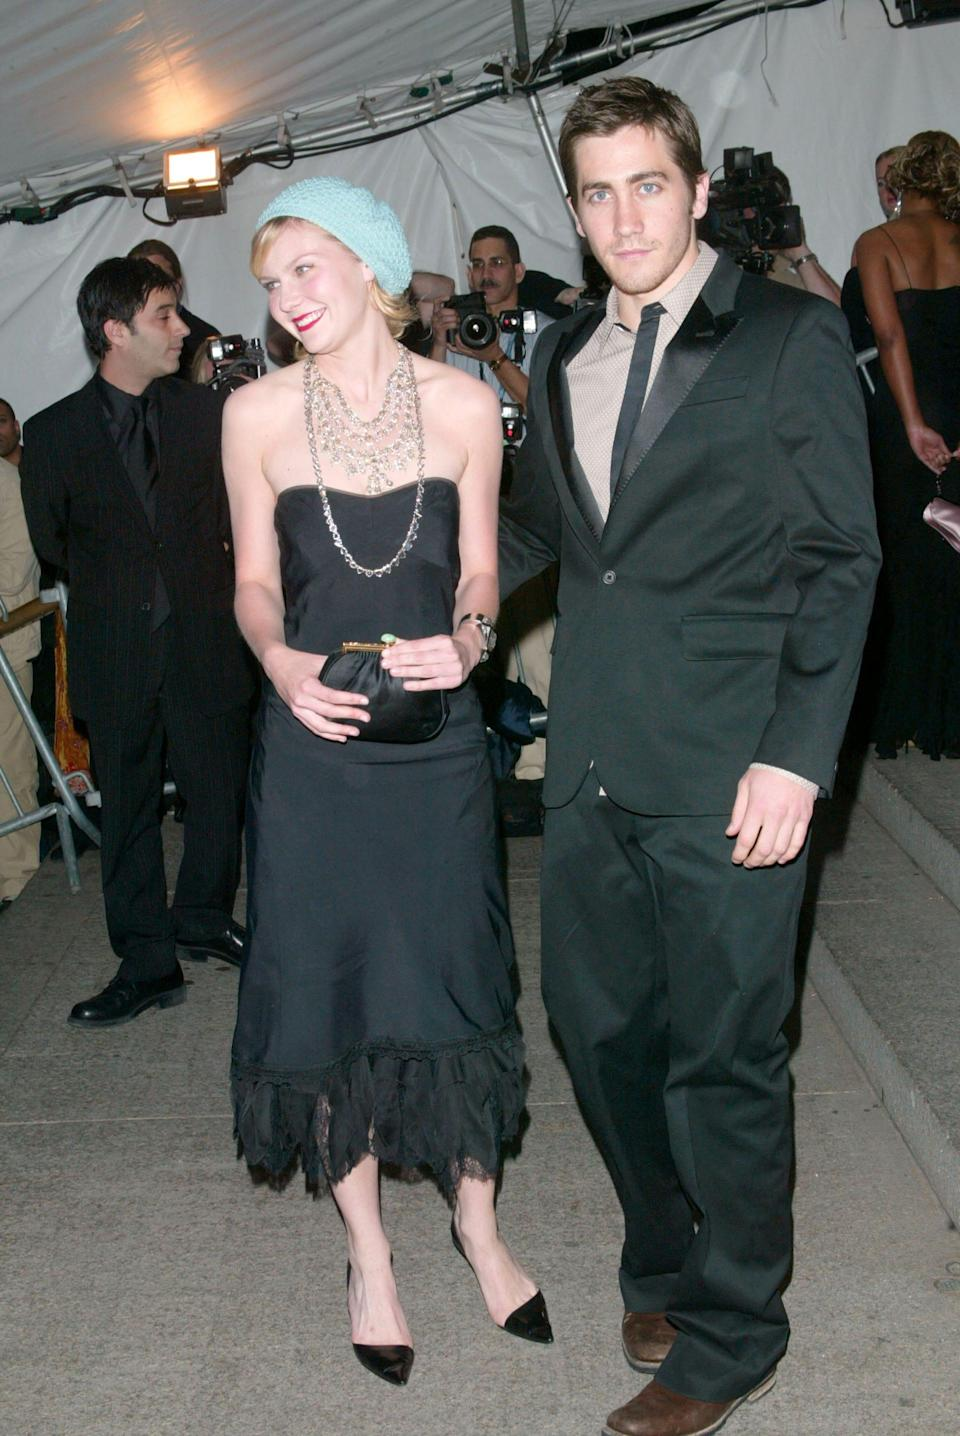 Kirsten Dunst in a black dress and hat and Jake Gyllenhaal in a suit on a red carpet.